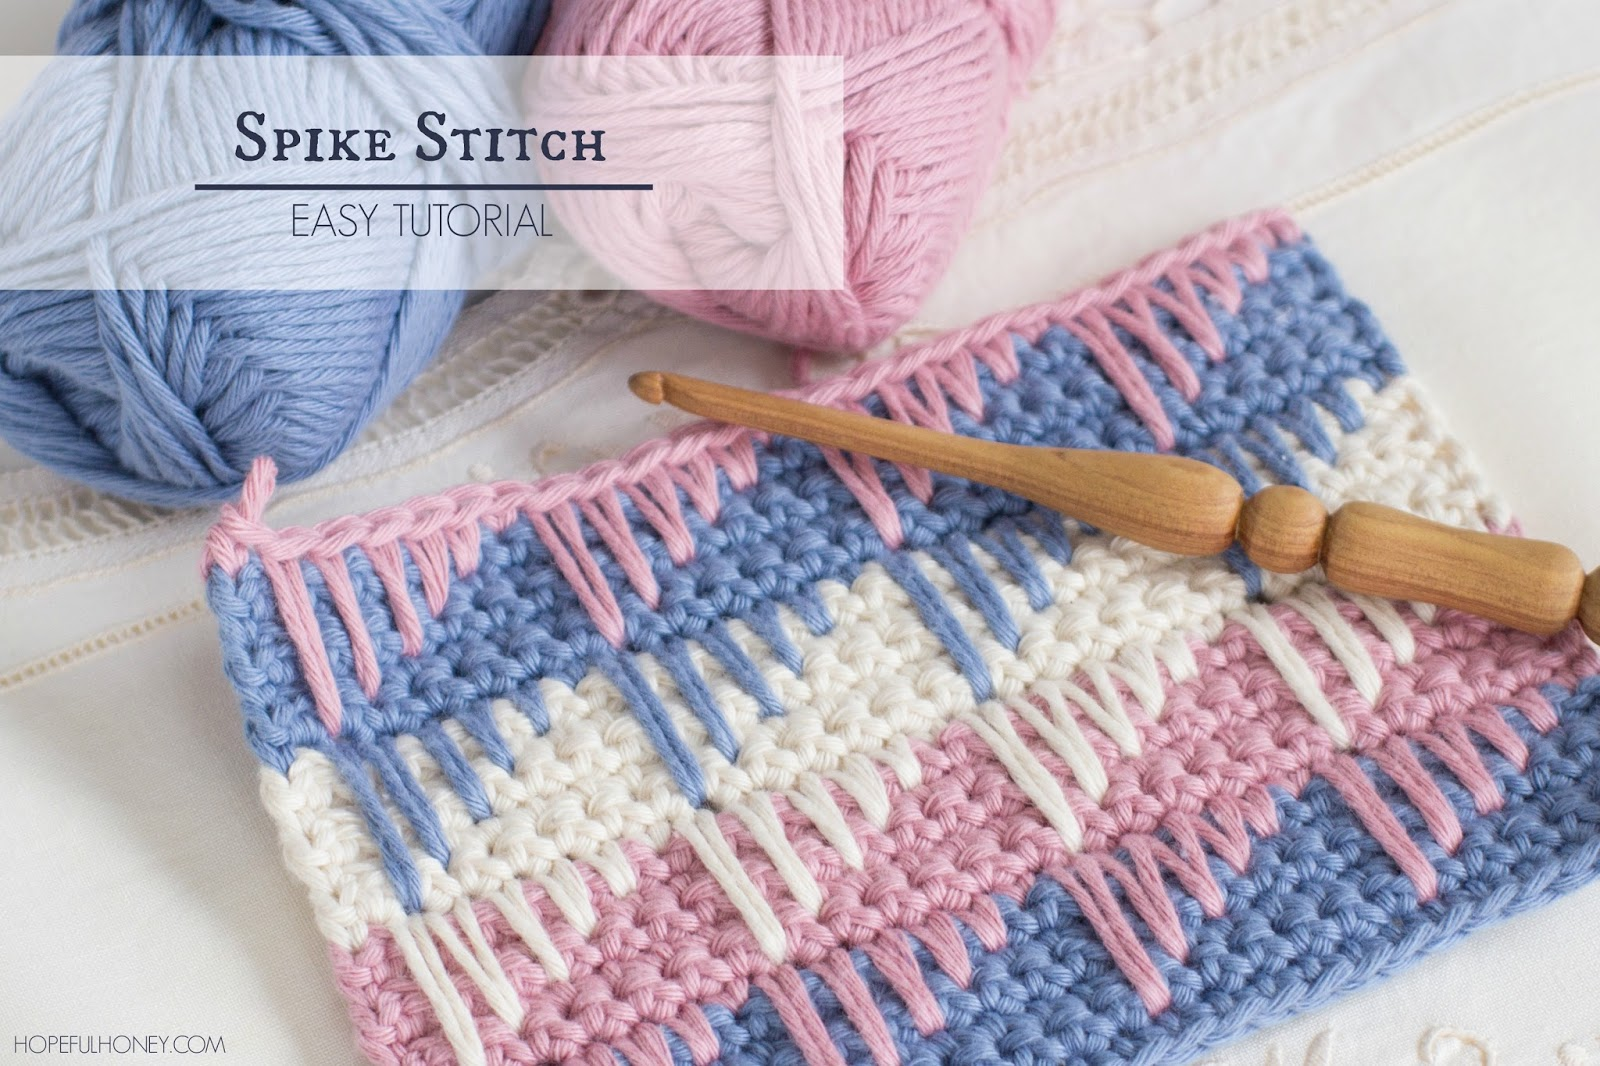 Crochet Patterns And Tutorials : ... , Crochet, Create: How To: Crochet The Spike Stitch - Easy Tutorial